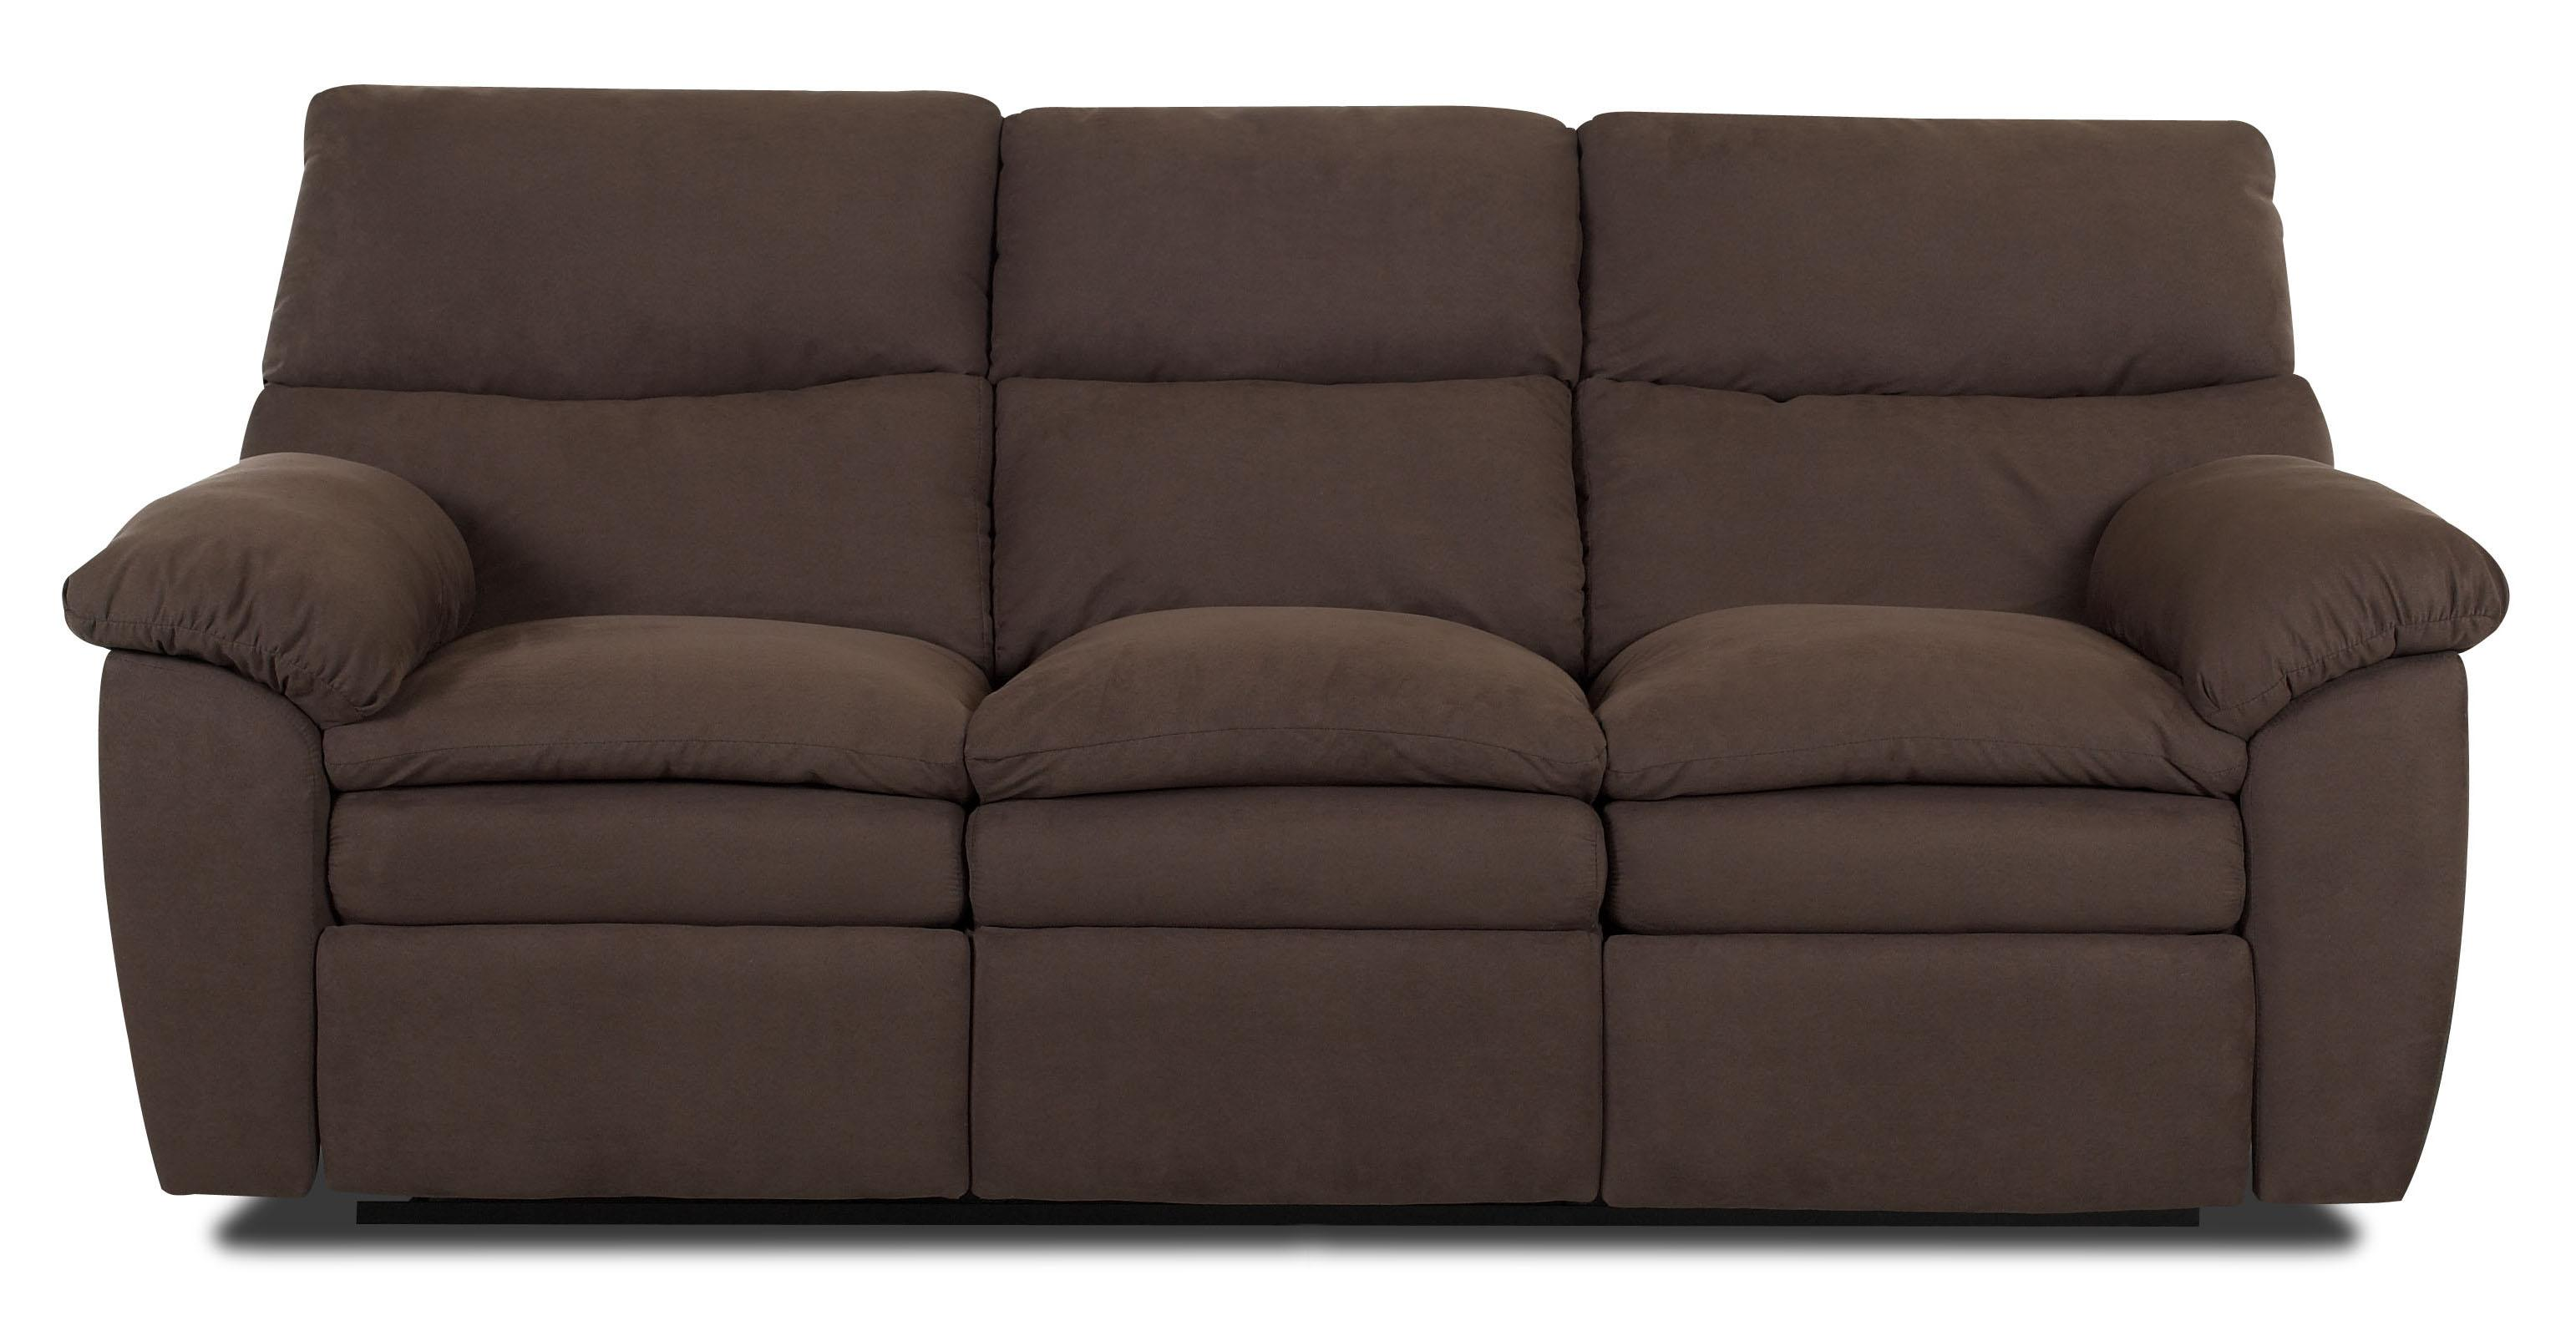 Sanders contemporary upholstered reclining sofa by for Sectional sofas wolf furniture